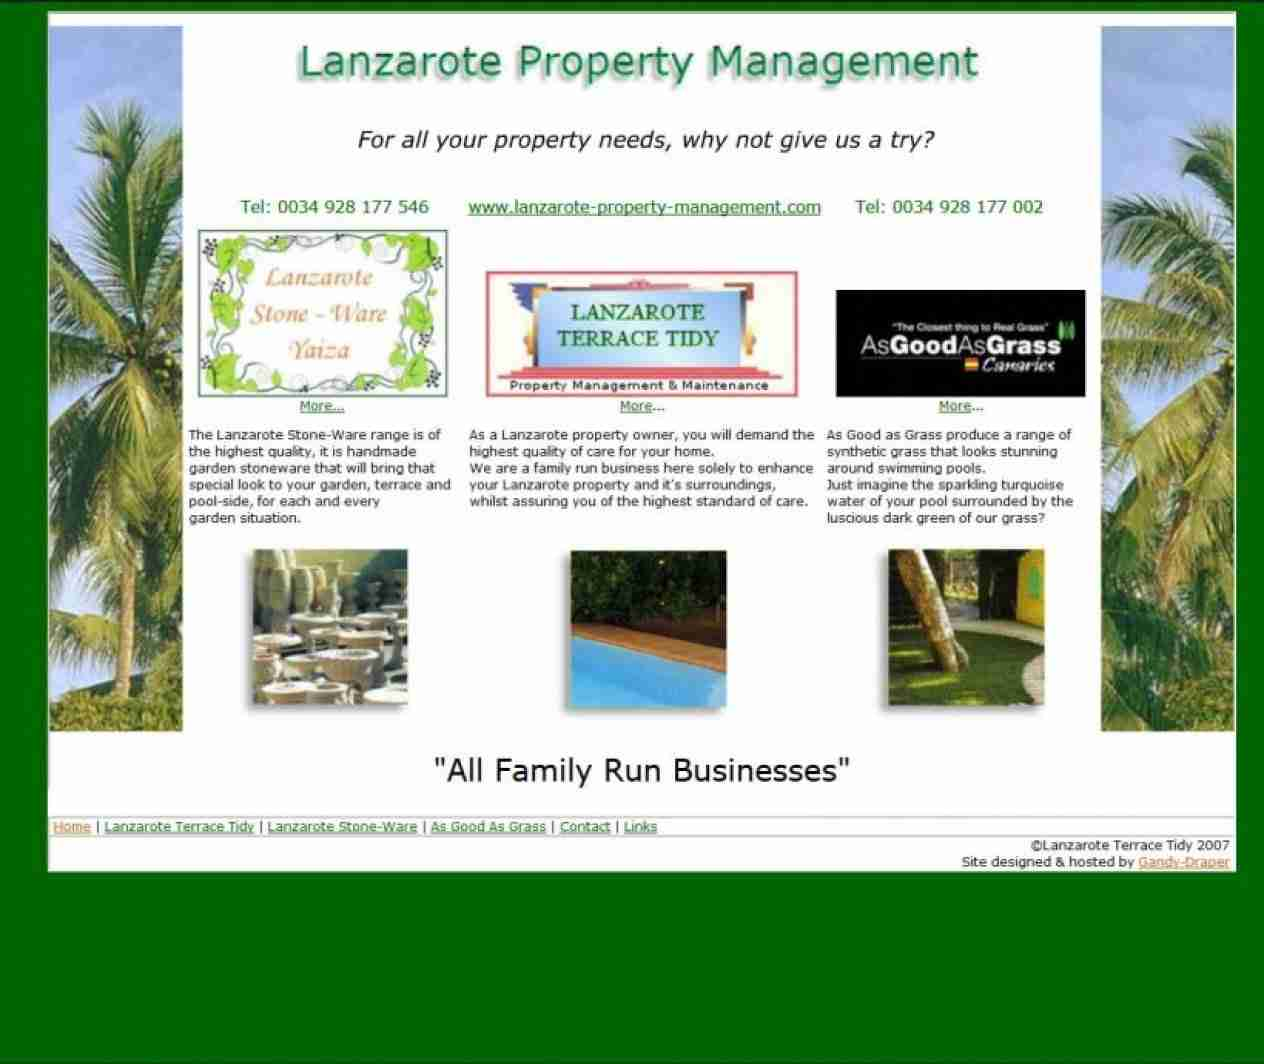 Lanzarote Property Management